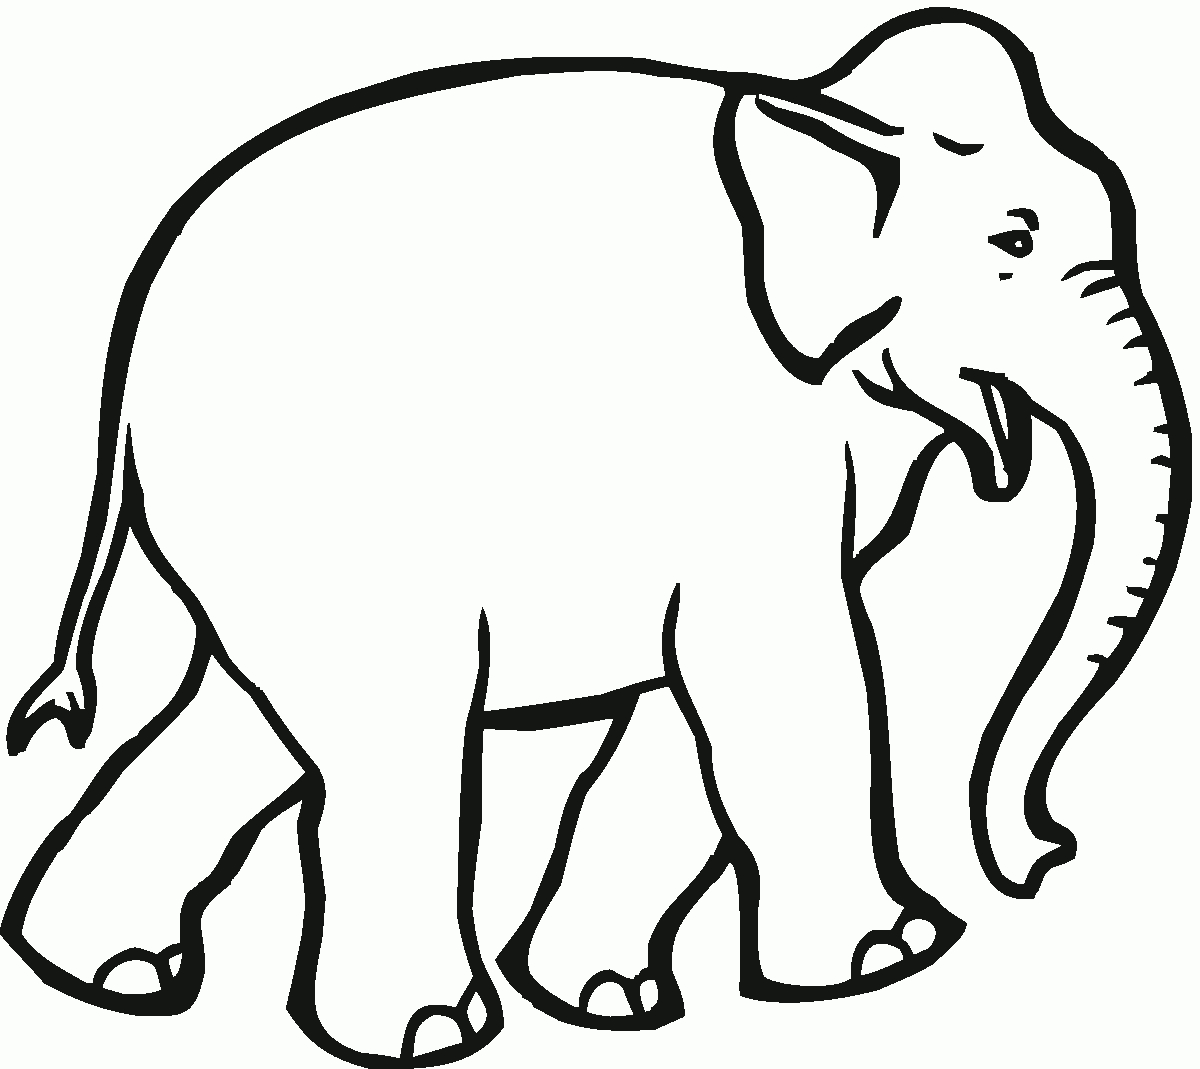 free printable elephant pictures elephant drawing pages at getdrawings free download elephant printable free pictures